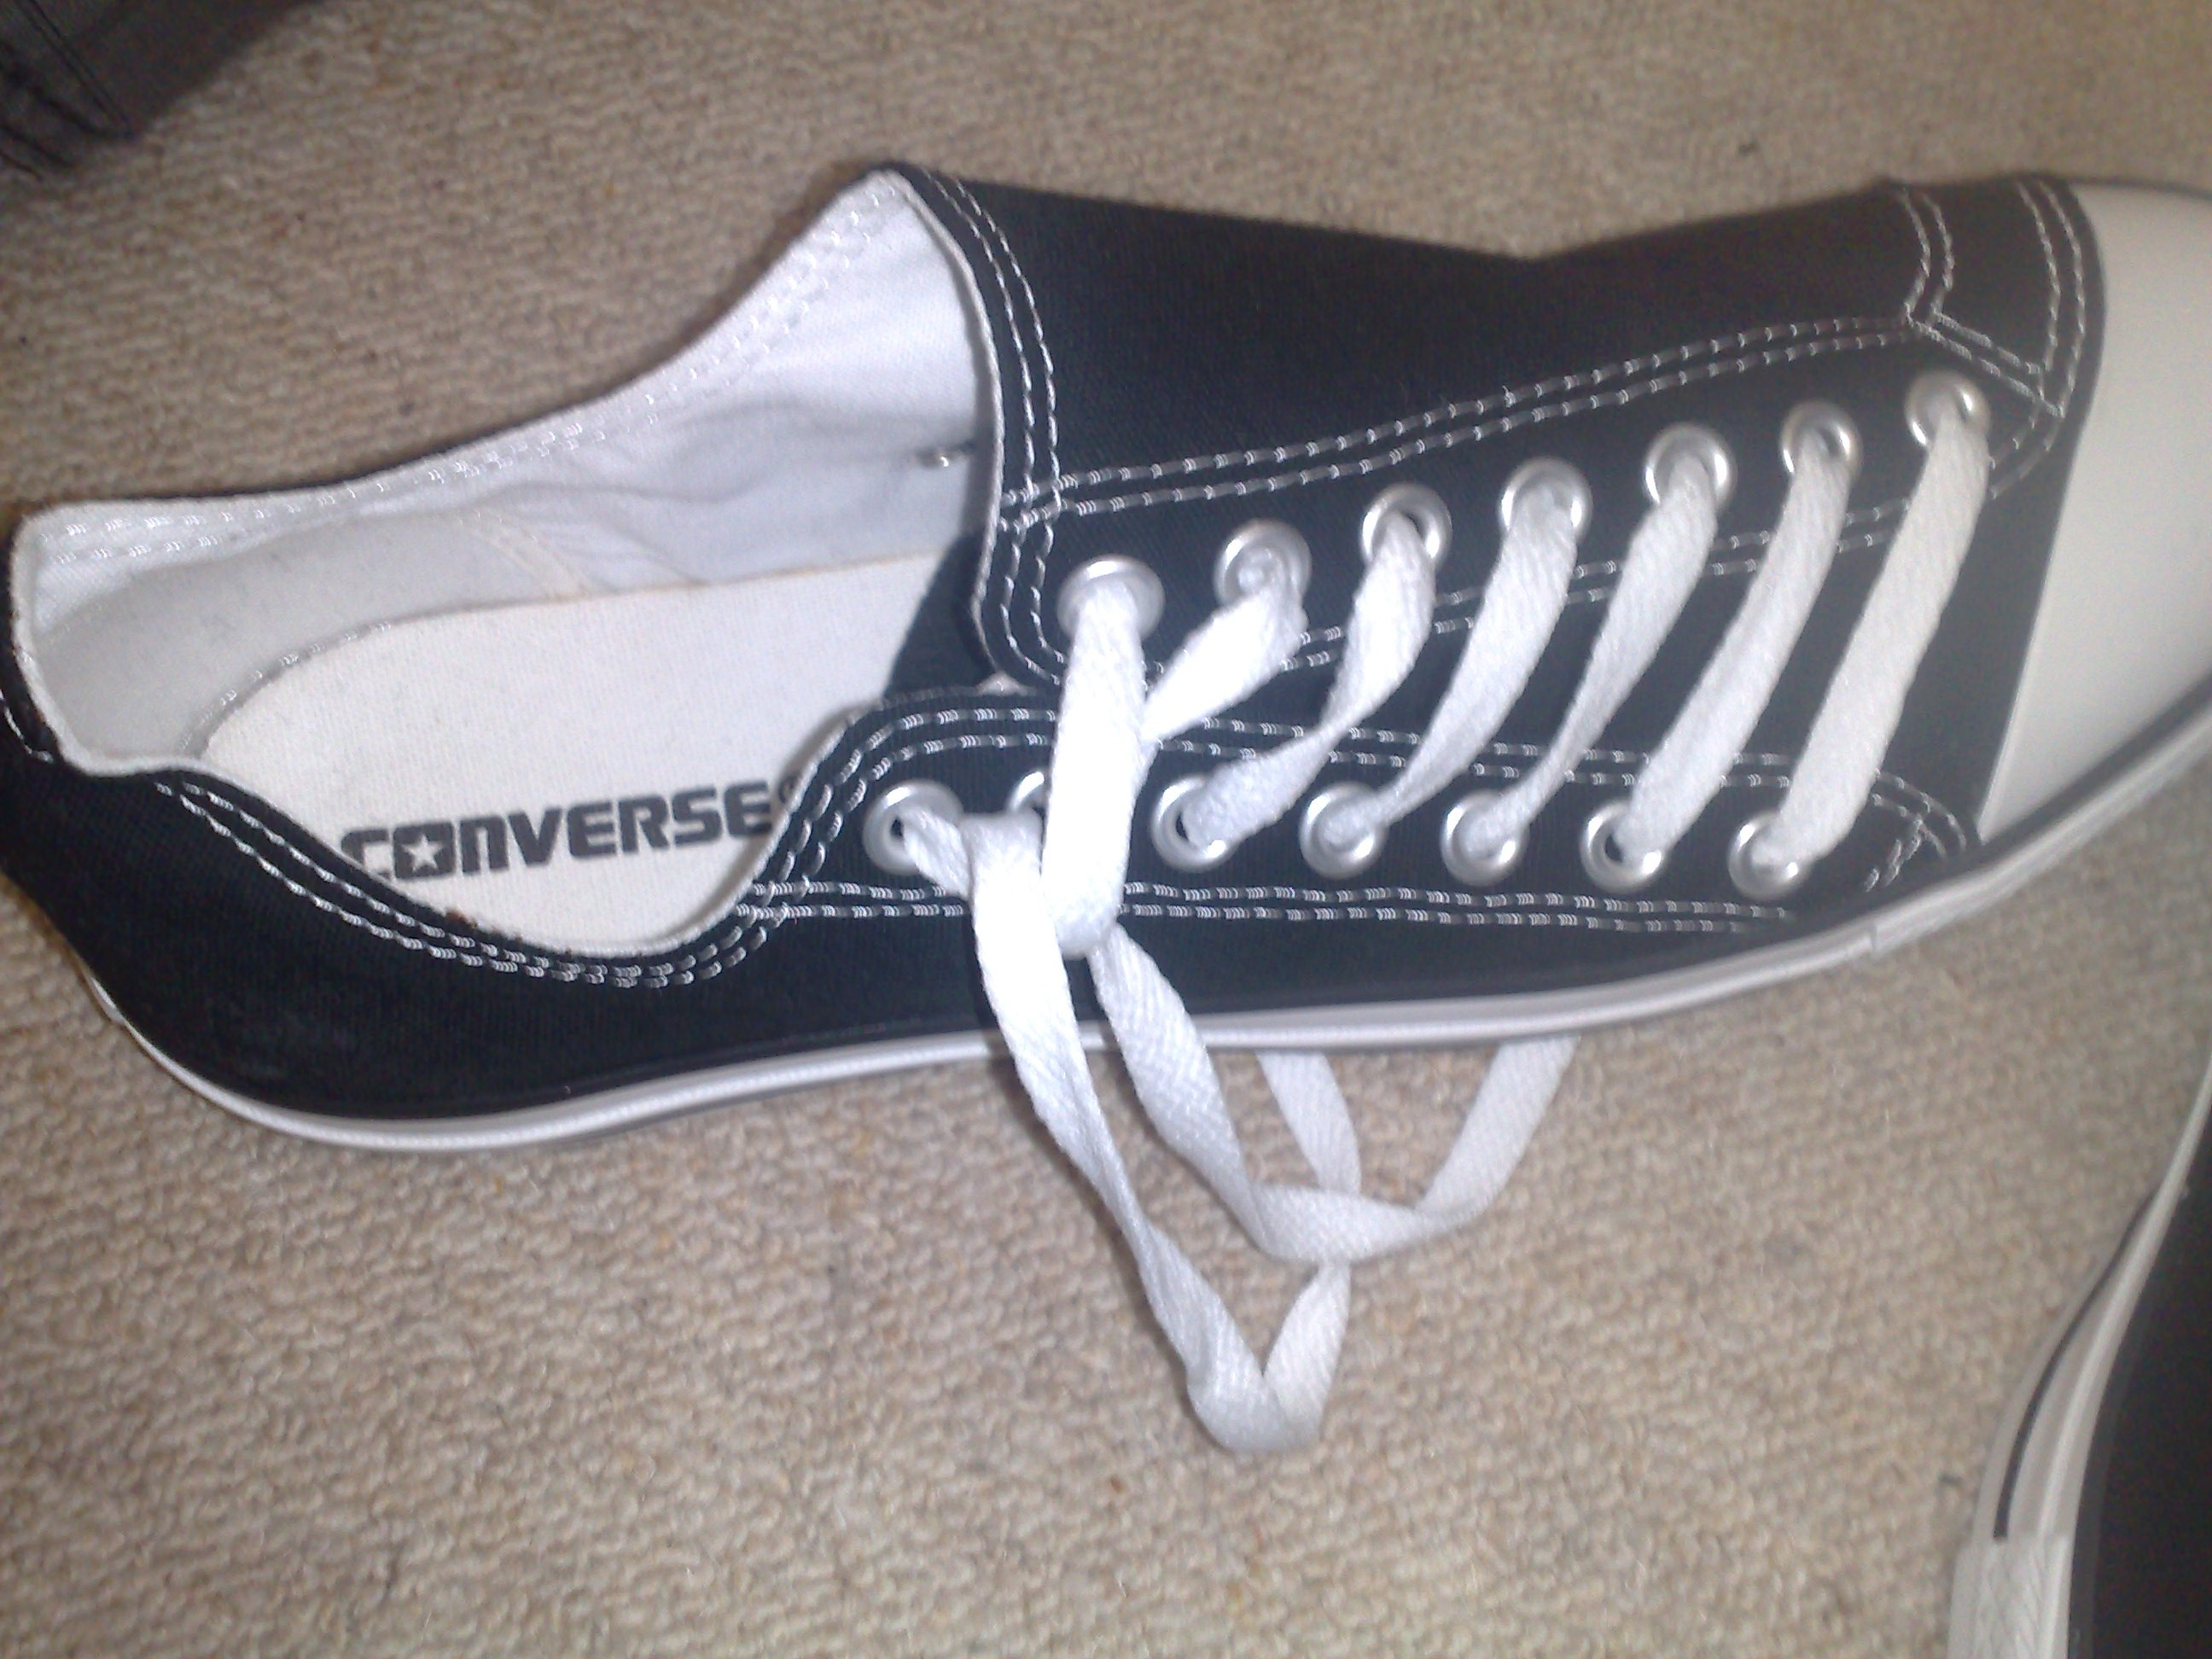 Converse purchased last year - never worn